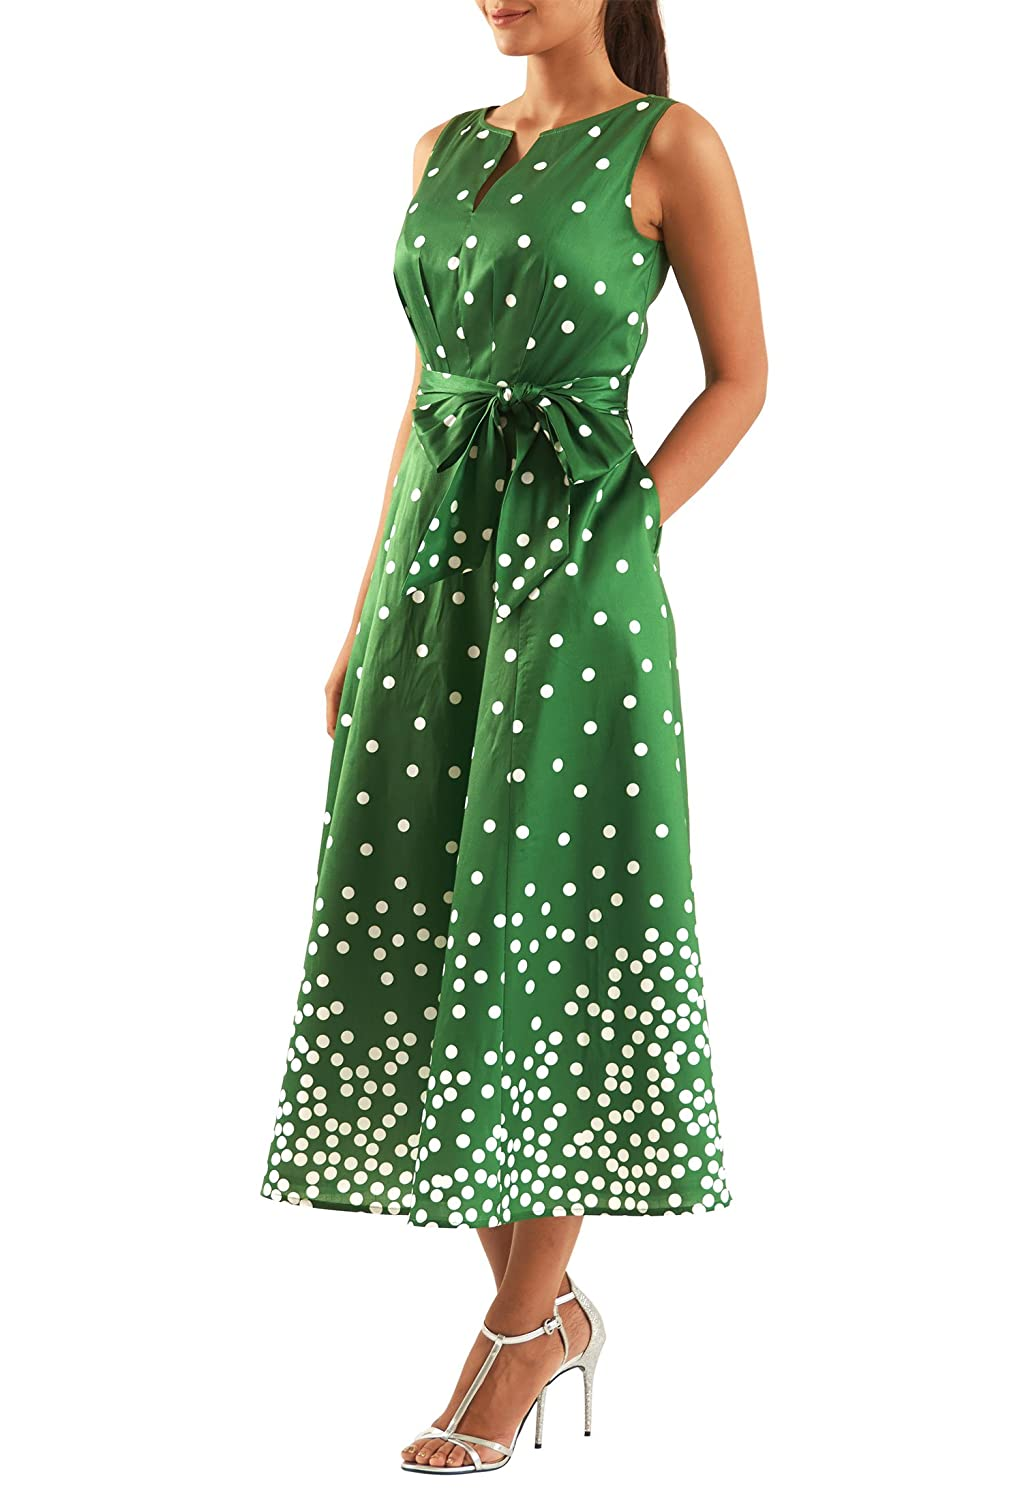 1950s Polka Dot Dresses eShakti Womens Polka dot print dupioni midi dress $69.95 AT vintagedancer.com